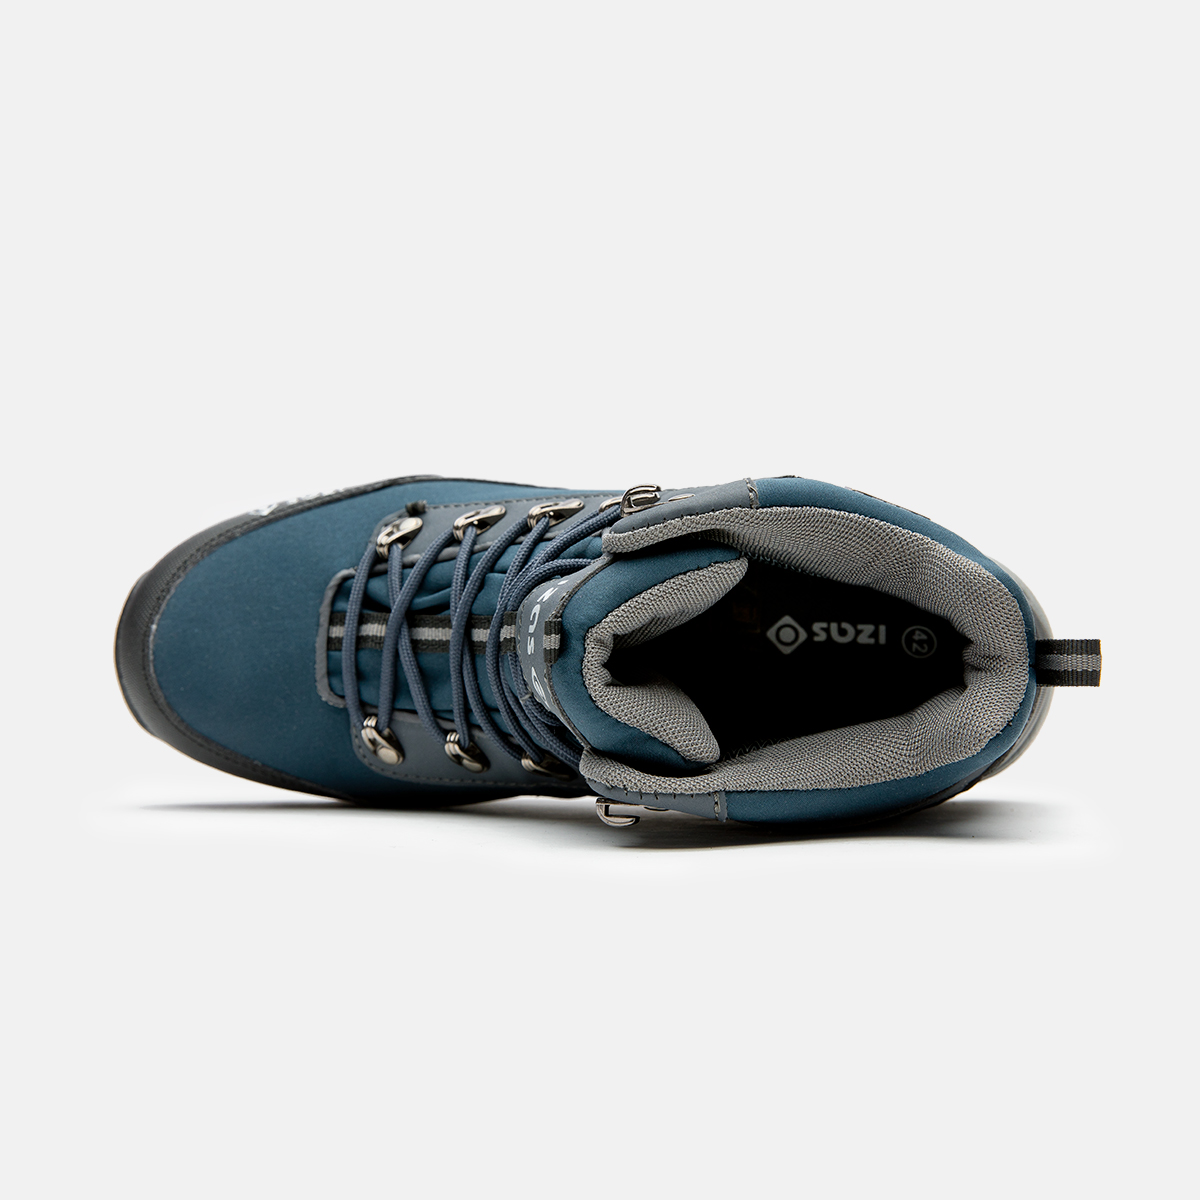 MAN'S GOUTER HIKING BOOTS BLUE